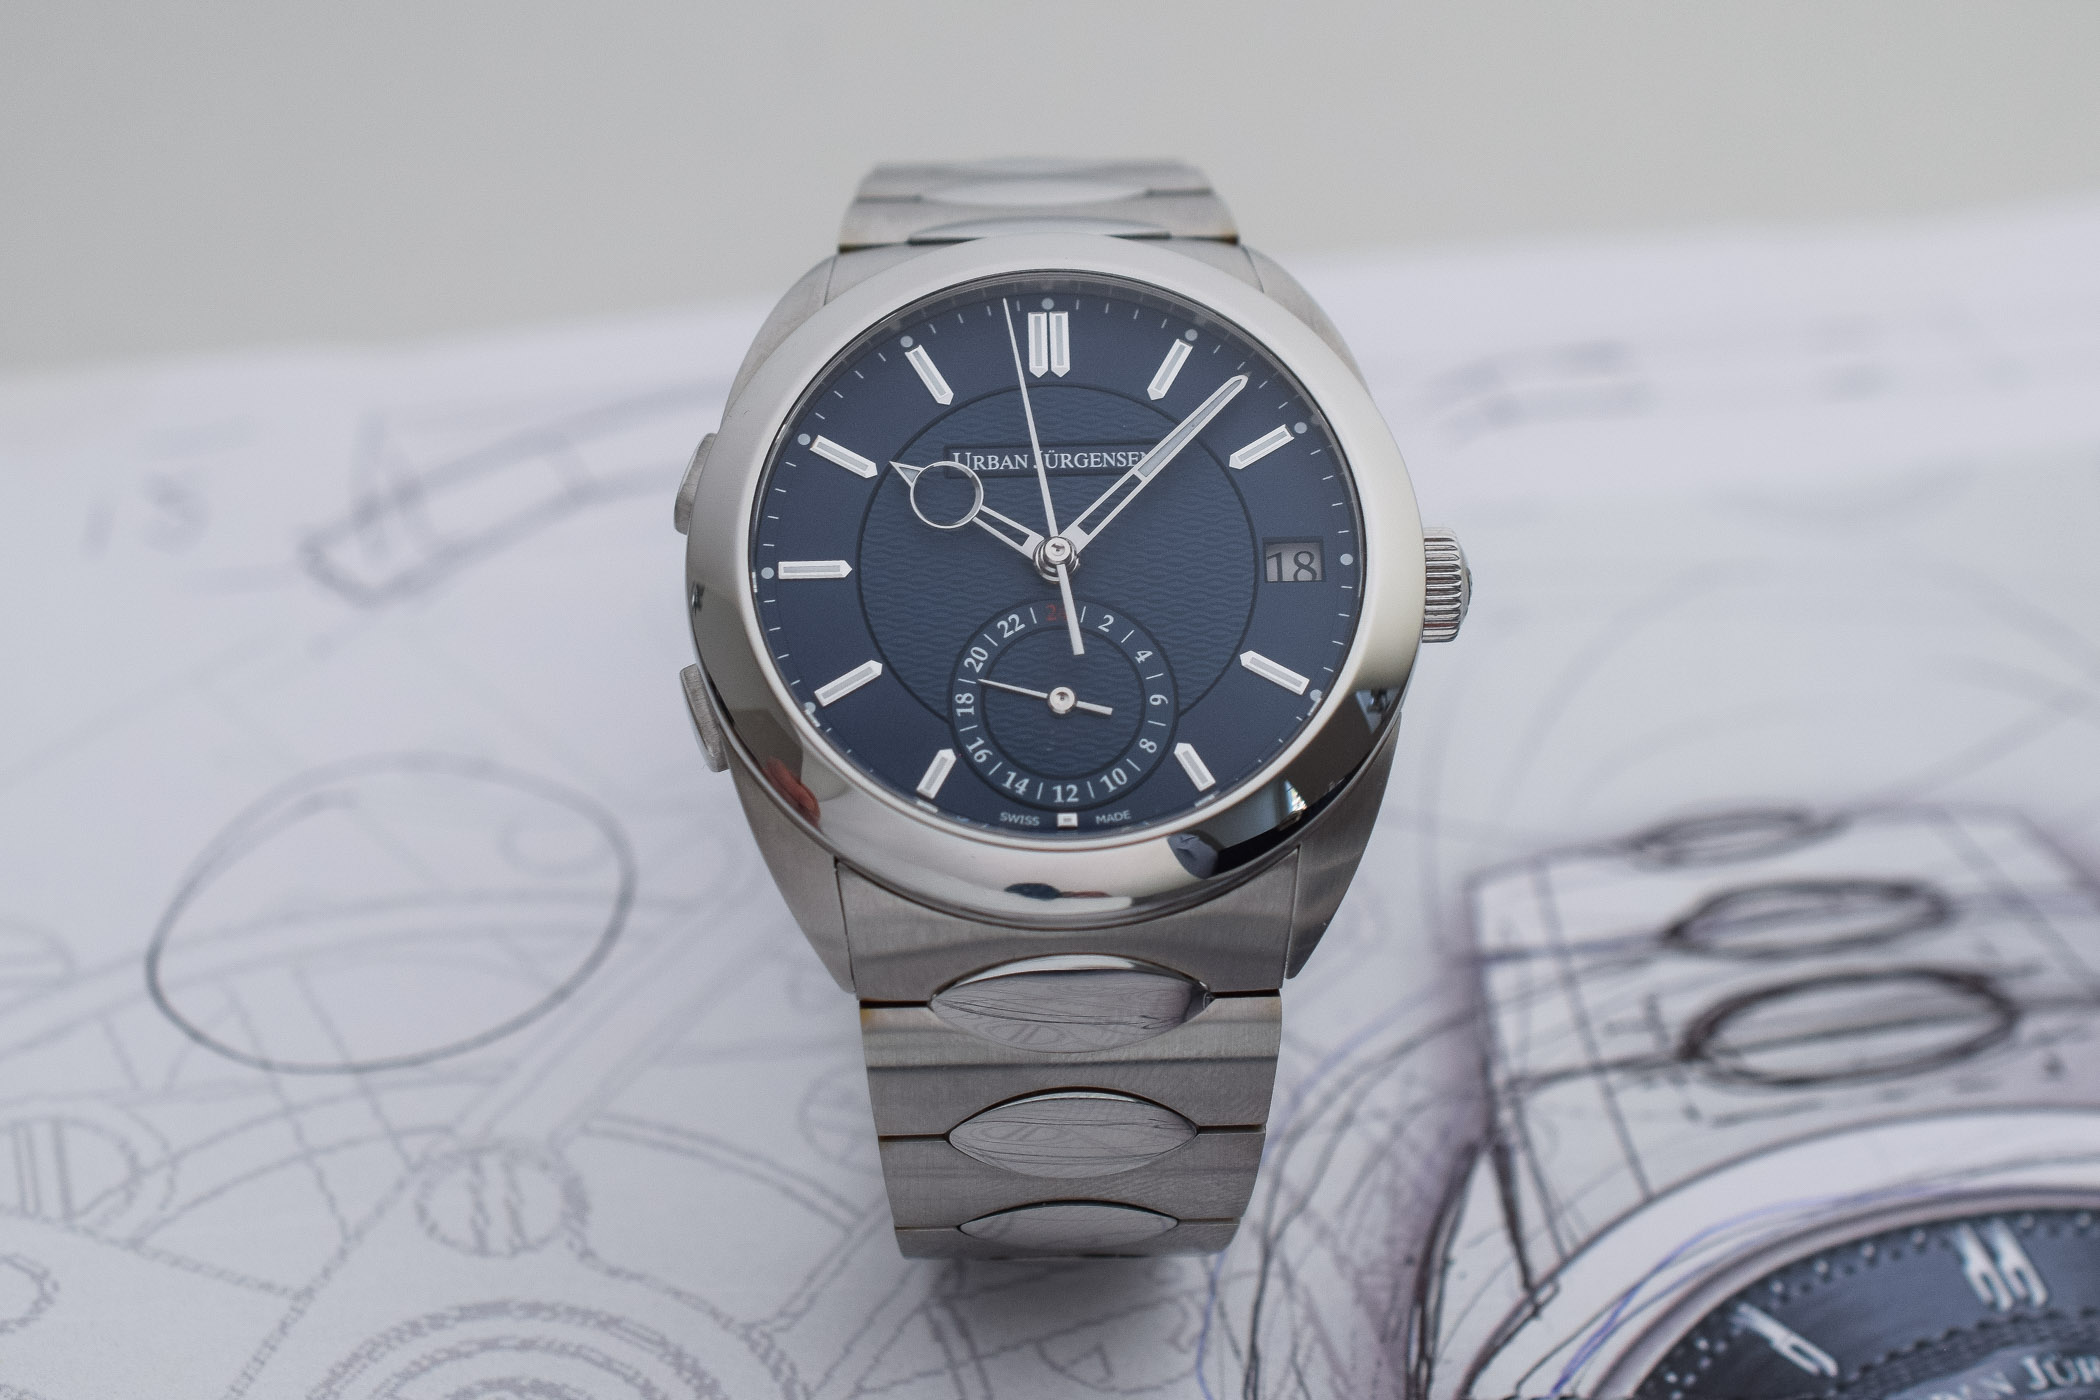 Urban Jurgensen First Luxury Sports Watch - Jurgensen One Collection - 10